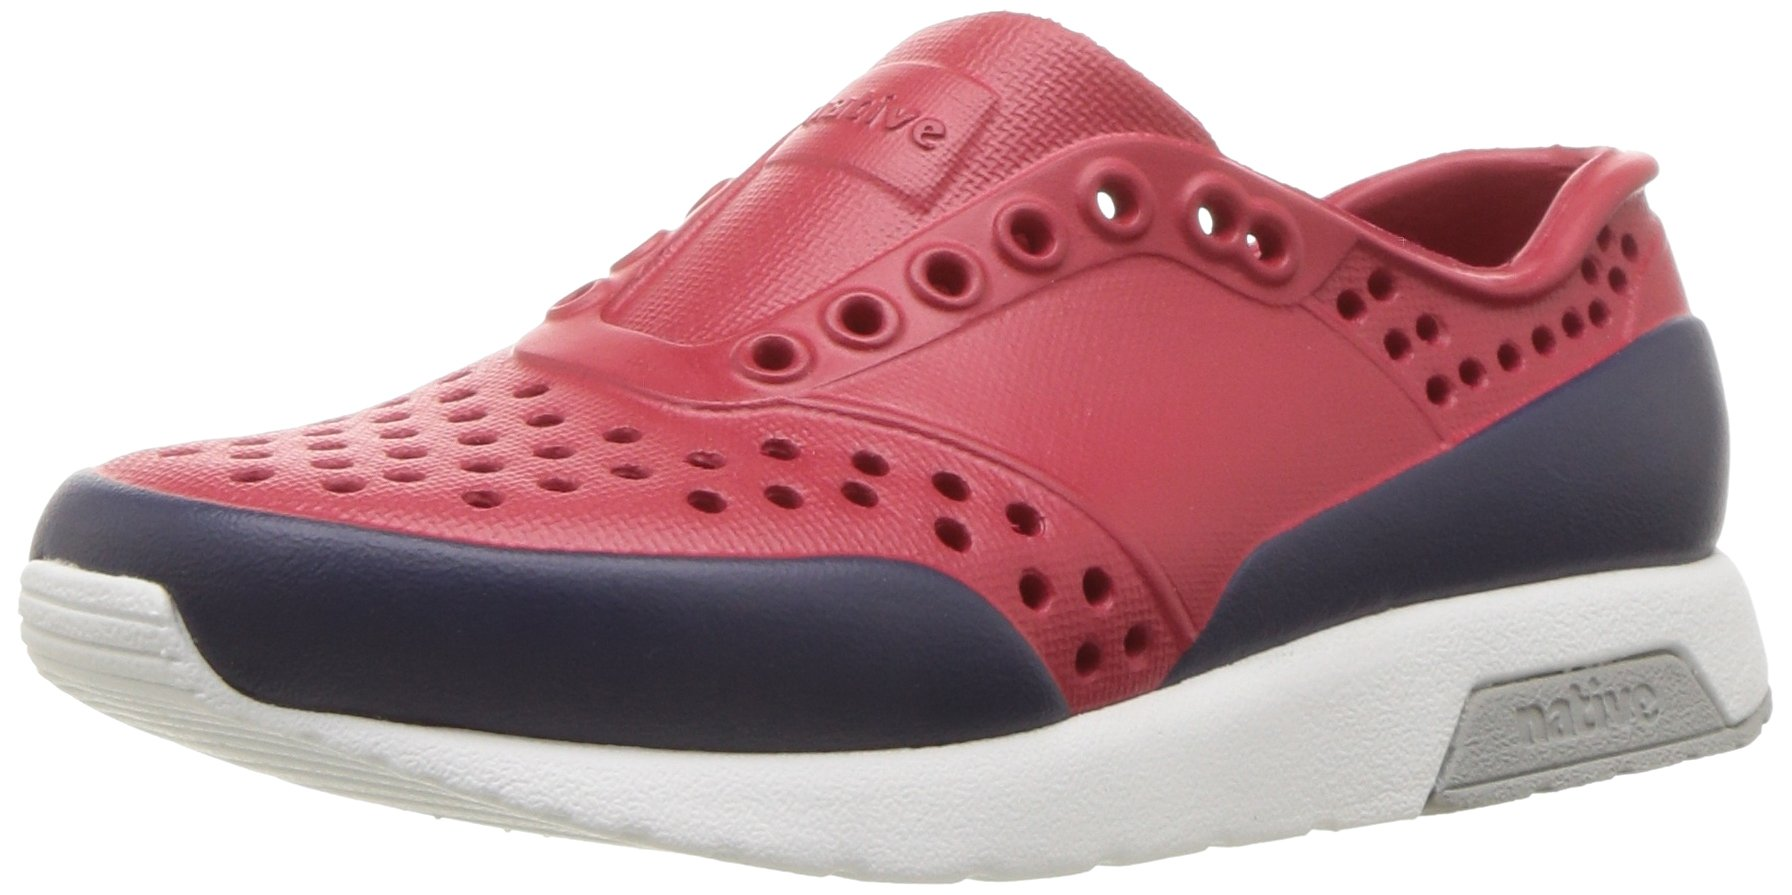 Native Shoes Baby Lennox Child Sneaker, ski Patrol red/Shell White/Pigeon Grey/Regatta Block, 4 Medium US Toddler by Native Shoes